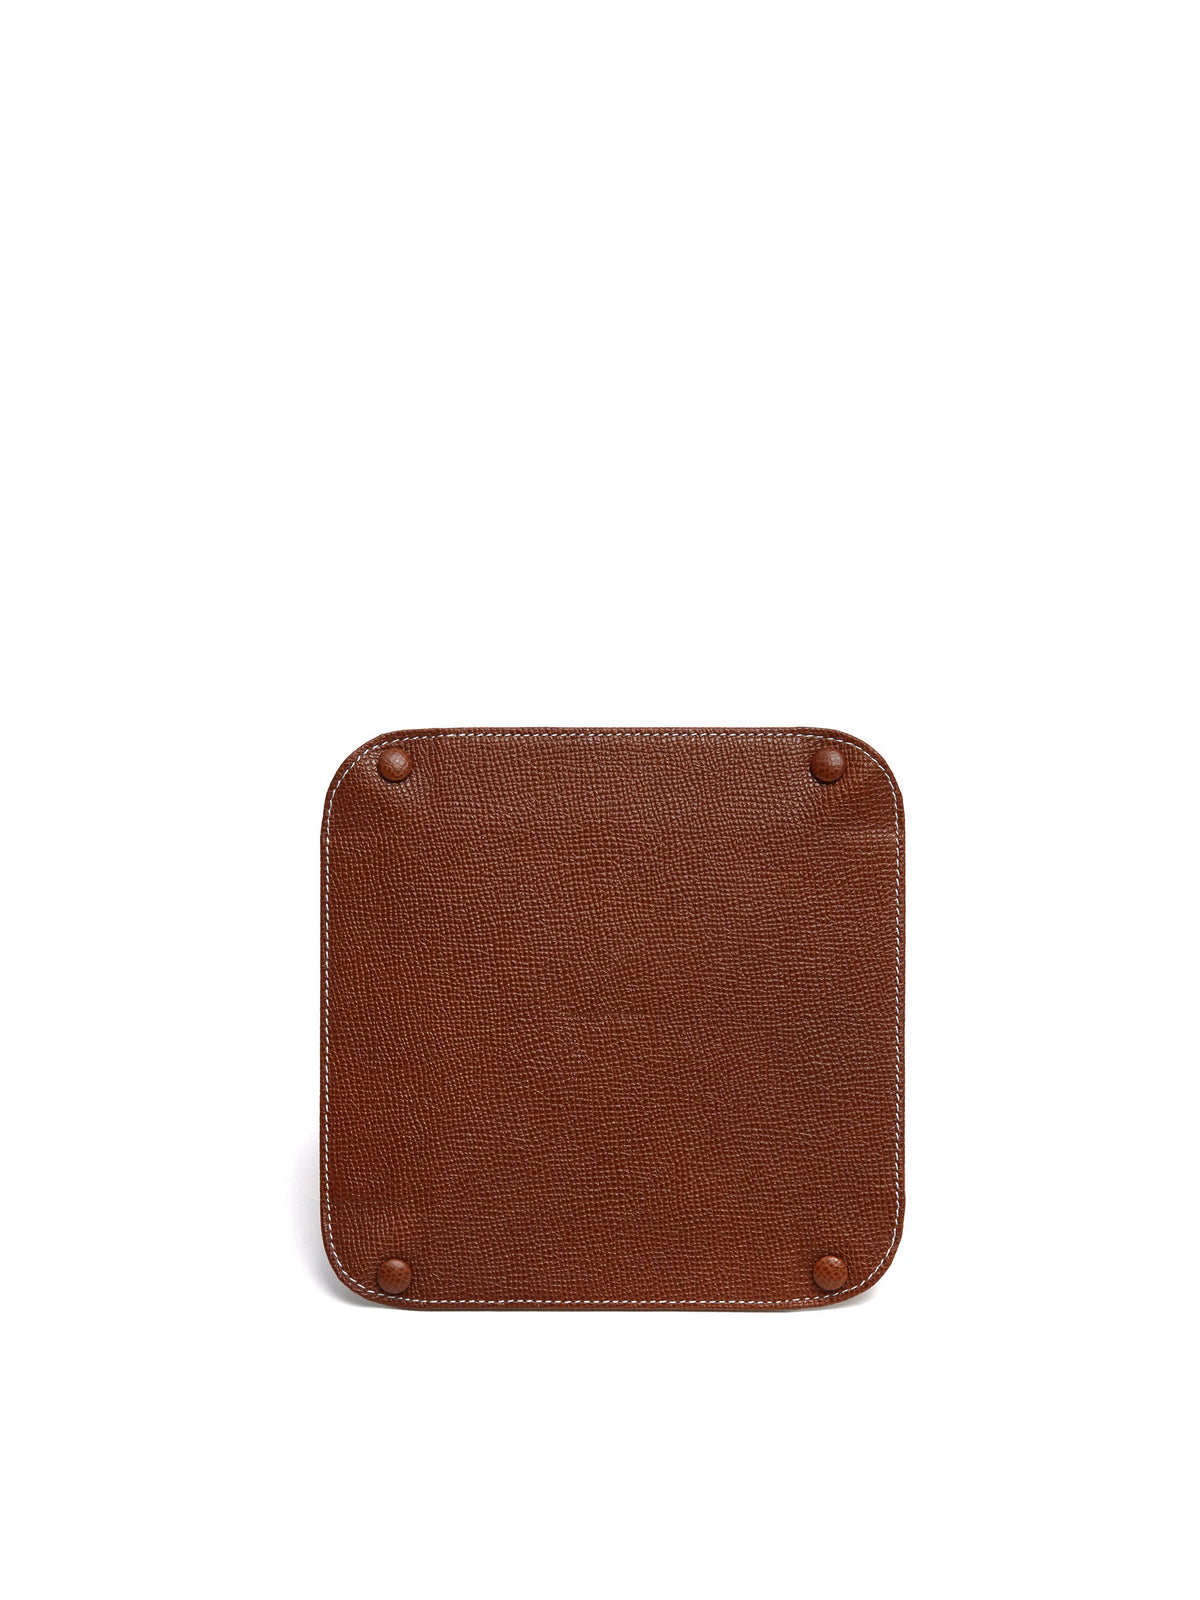 Small Leather Valet Tray